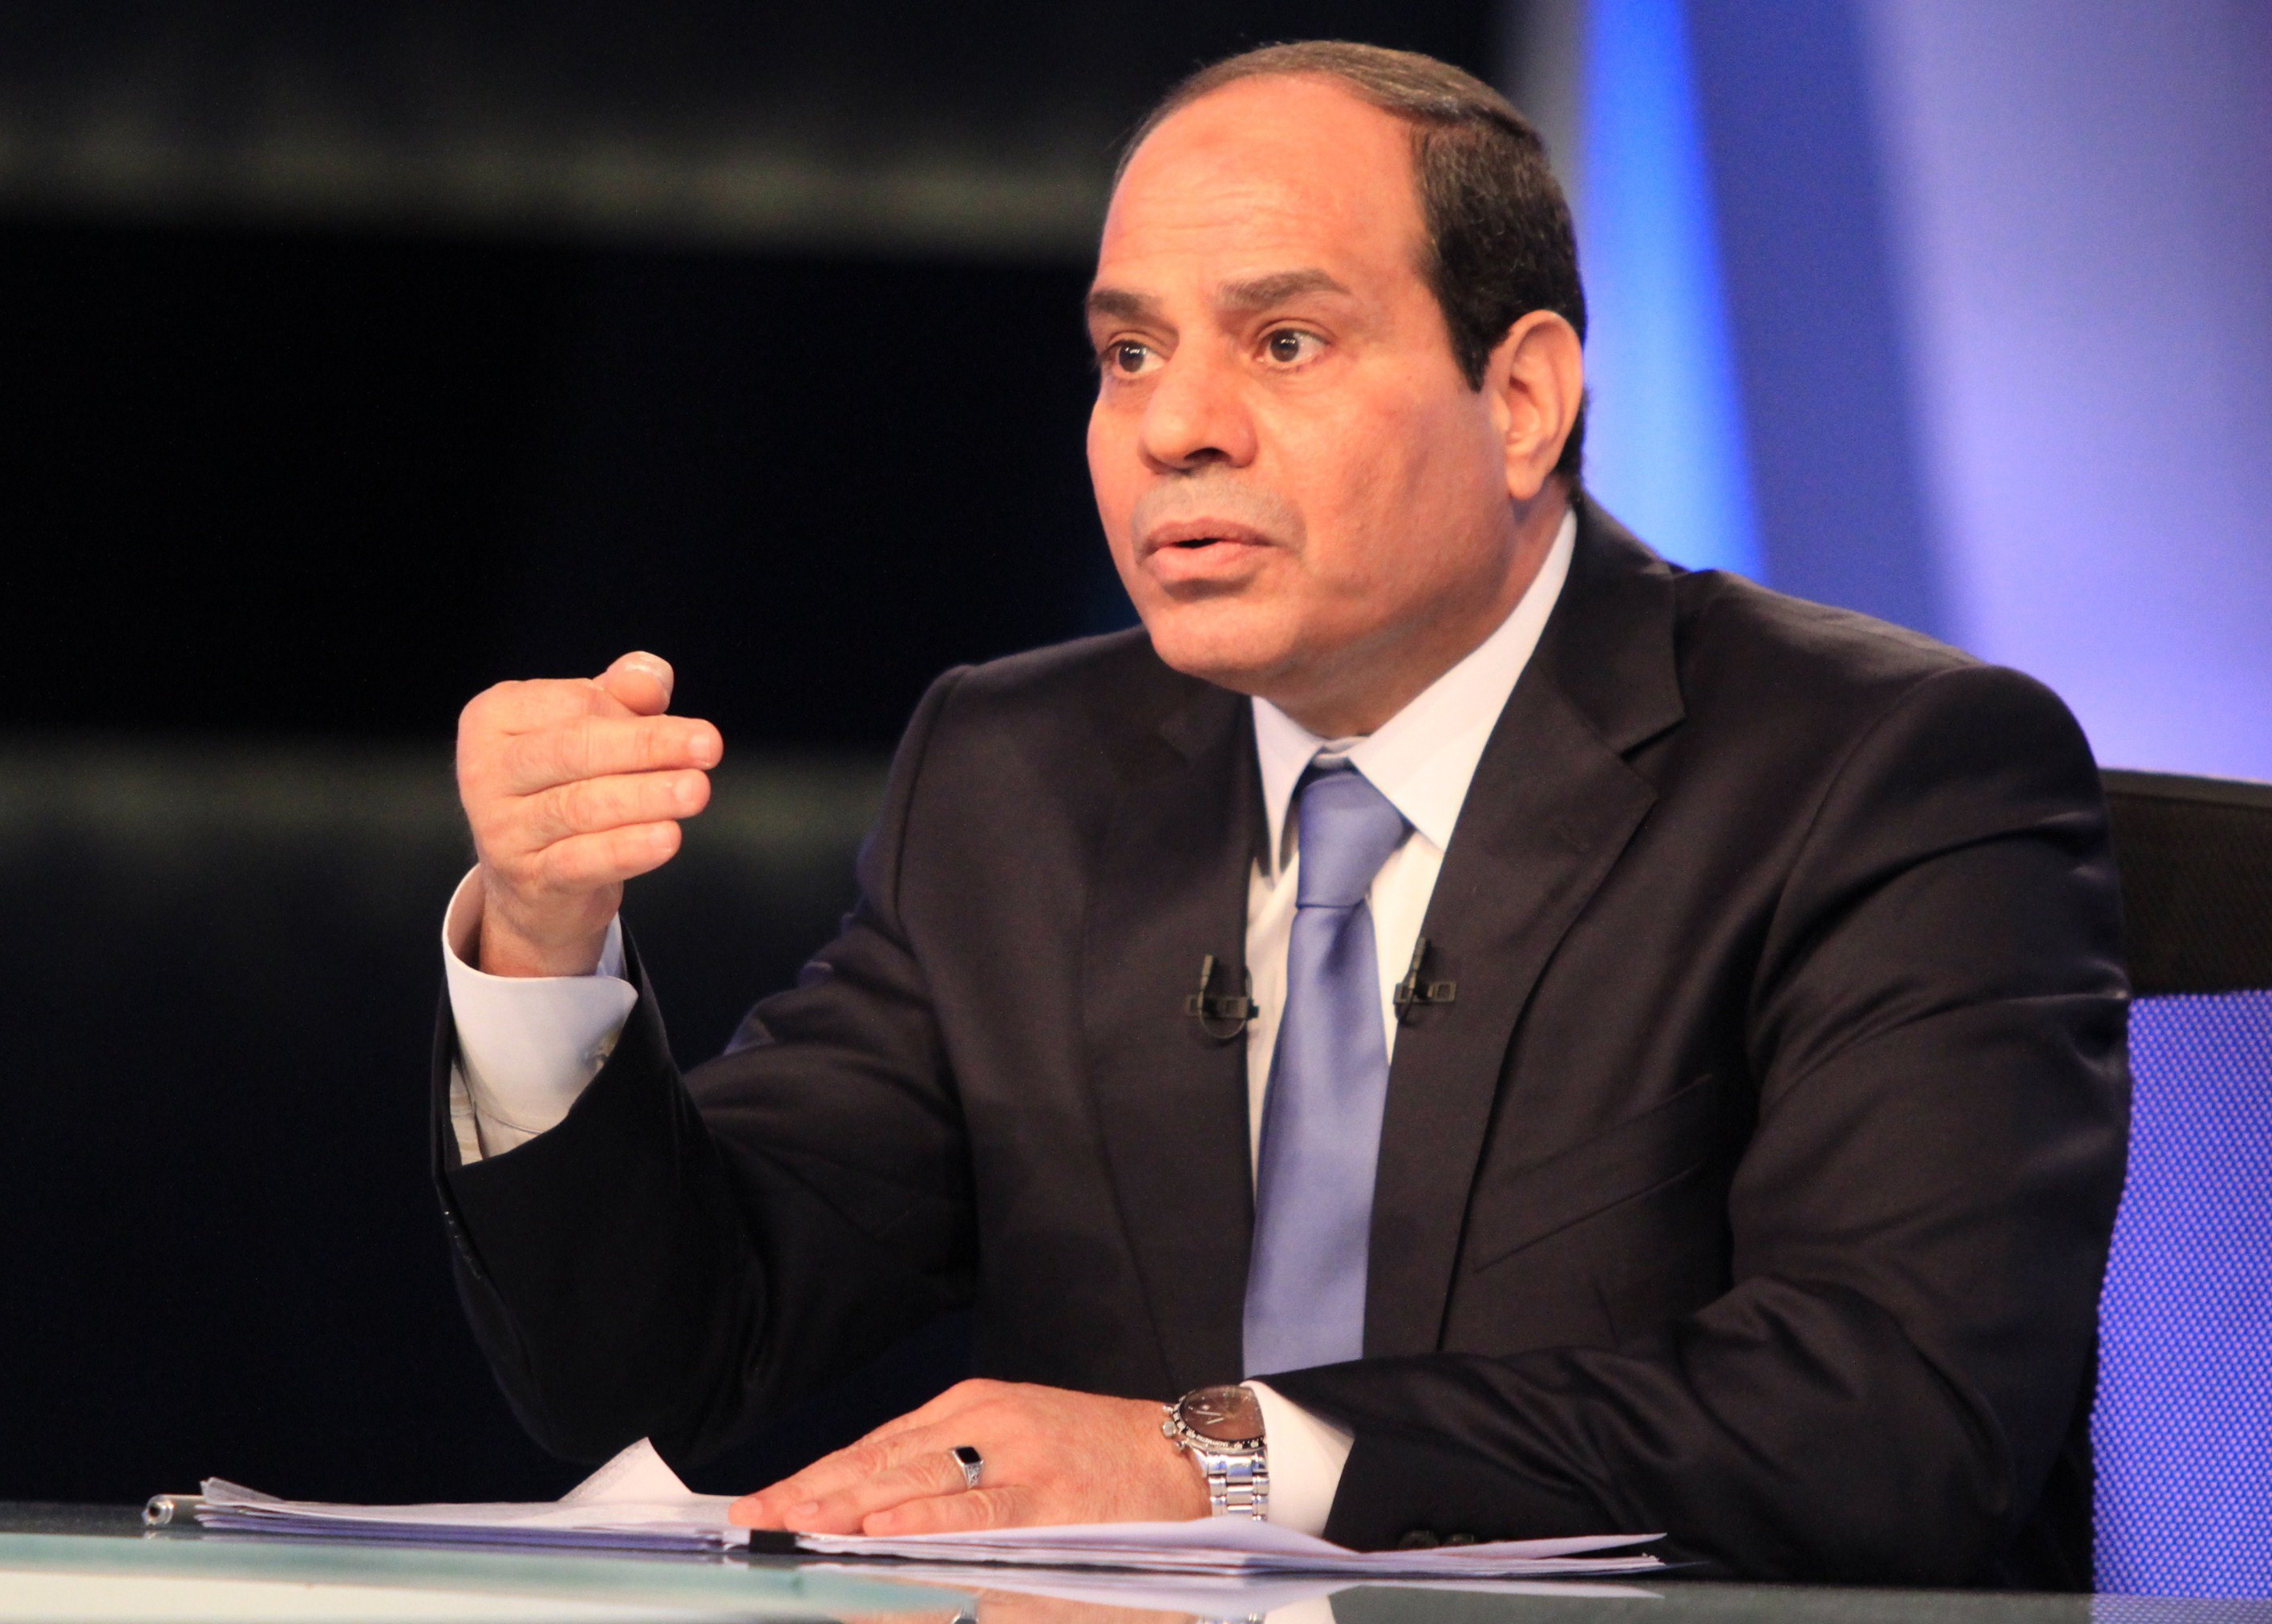 There Are Terrorist Elements in Syria Said Egypt's President - The President of Egypt Abdulfattah Al-Sisi warned from a military intervention in Syria and called for respecting its territorial sovereignty and dealing with the flow of terrorist foreign fighters. mpcmena journal - Hakim Khatib